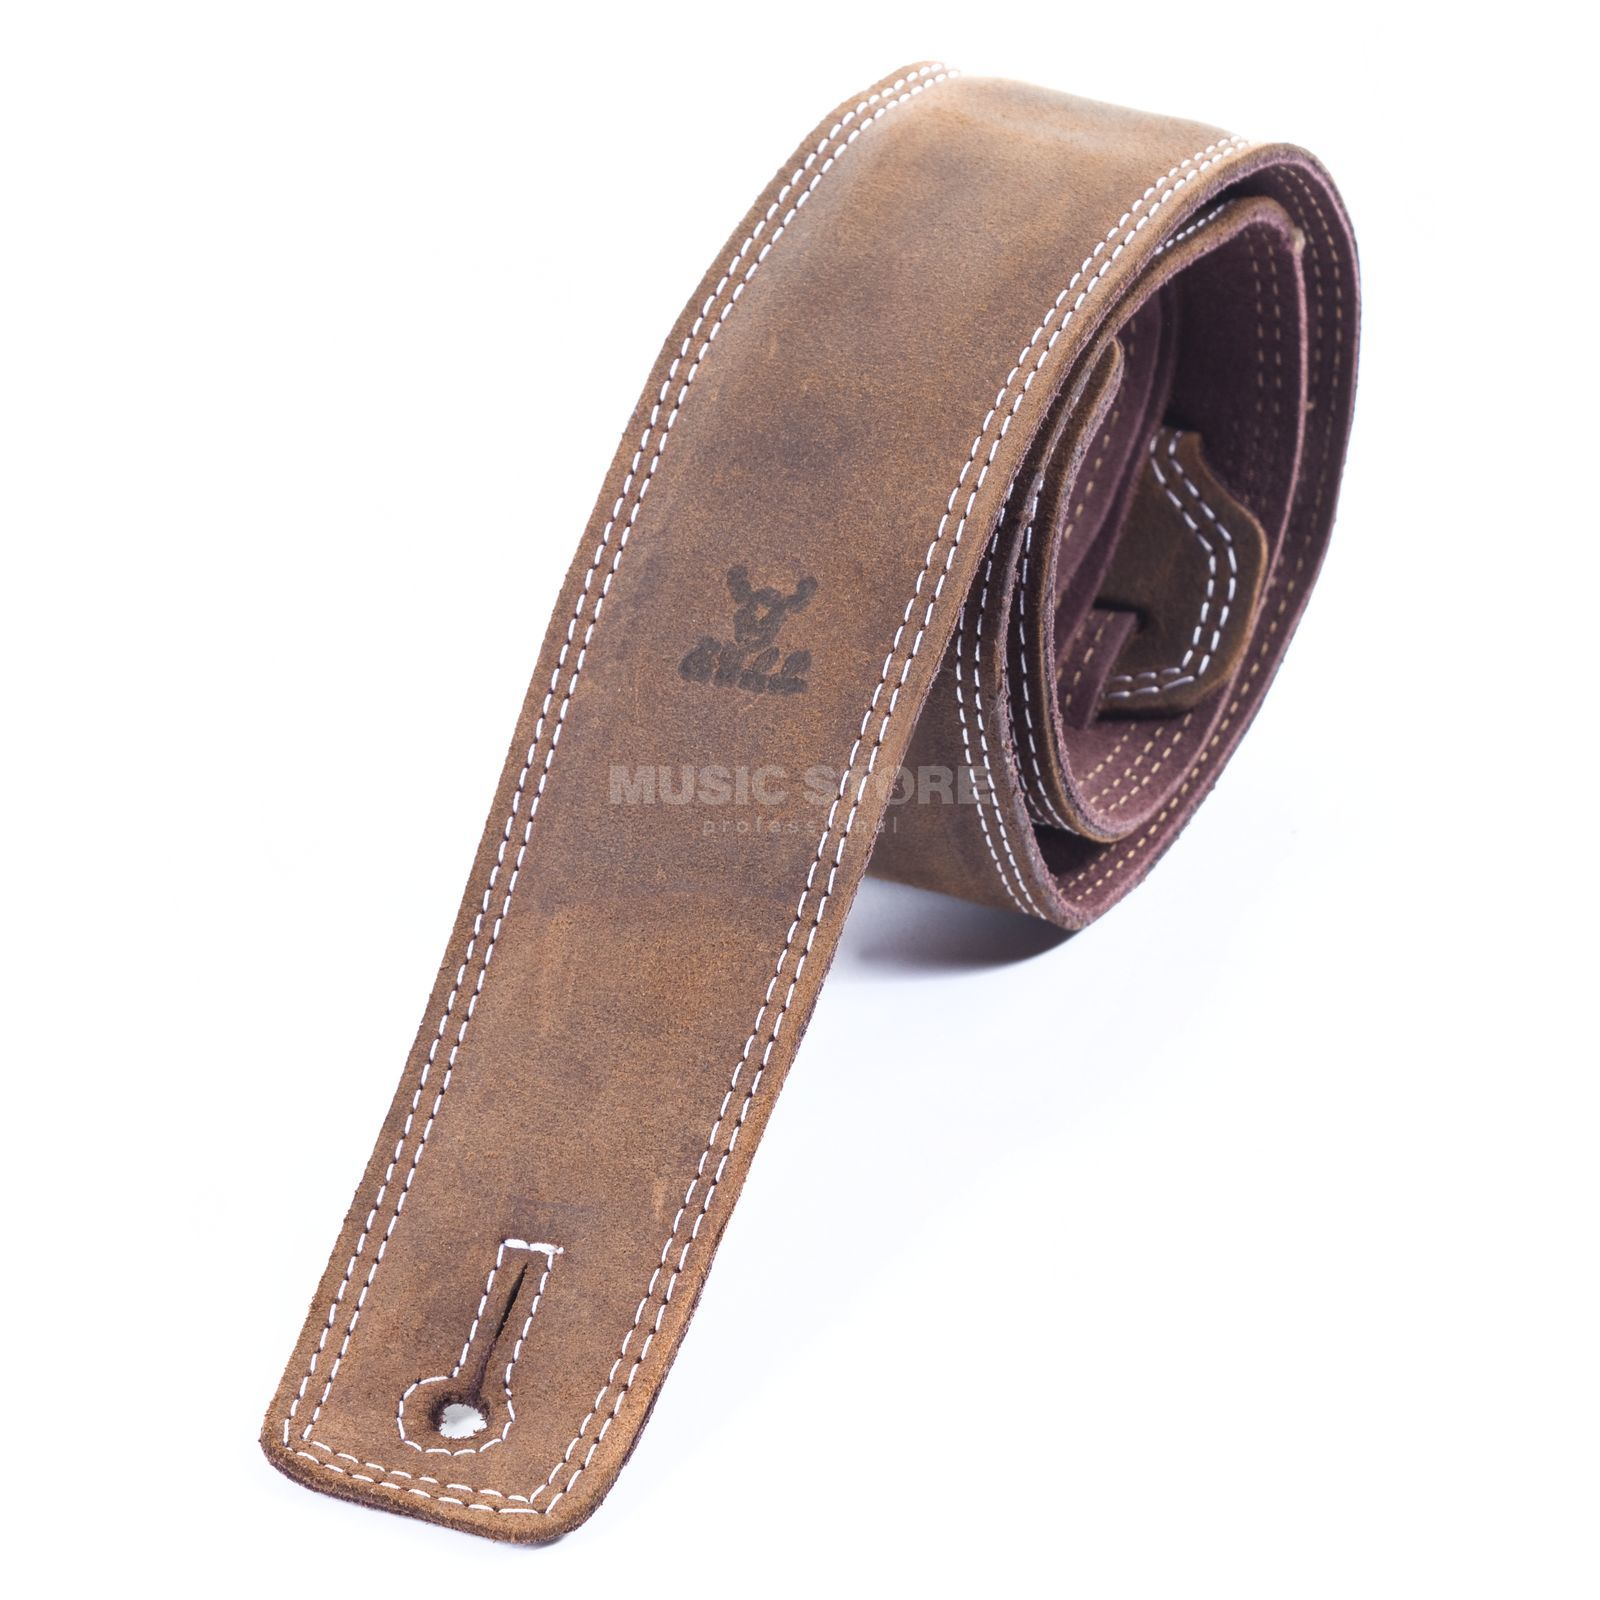 "Bull Nubuk Leather Strap - Antique Brown 2.5"" 0.98-1.45m Produktbillede"